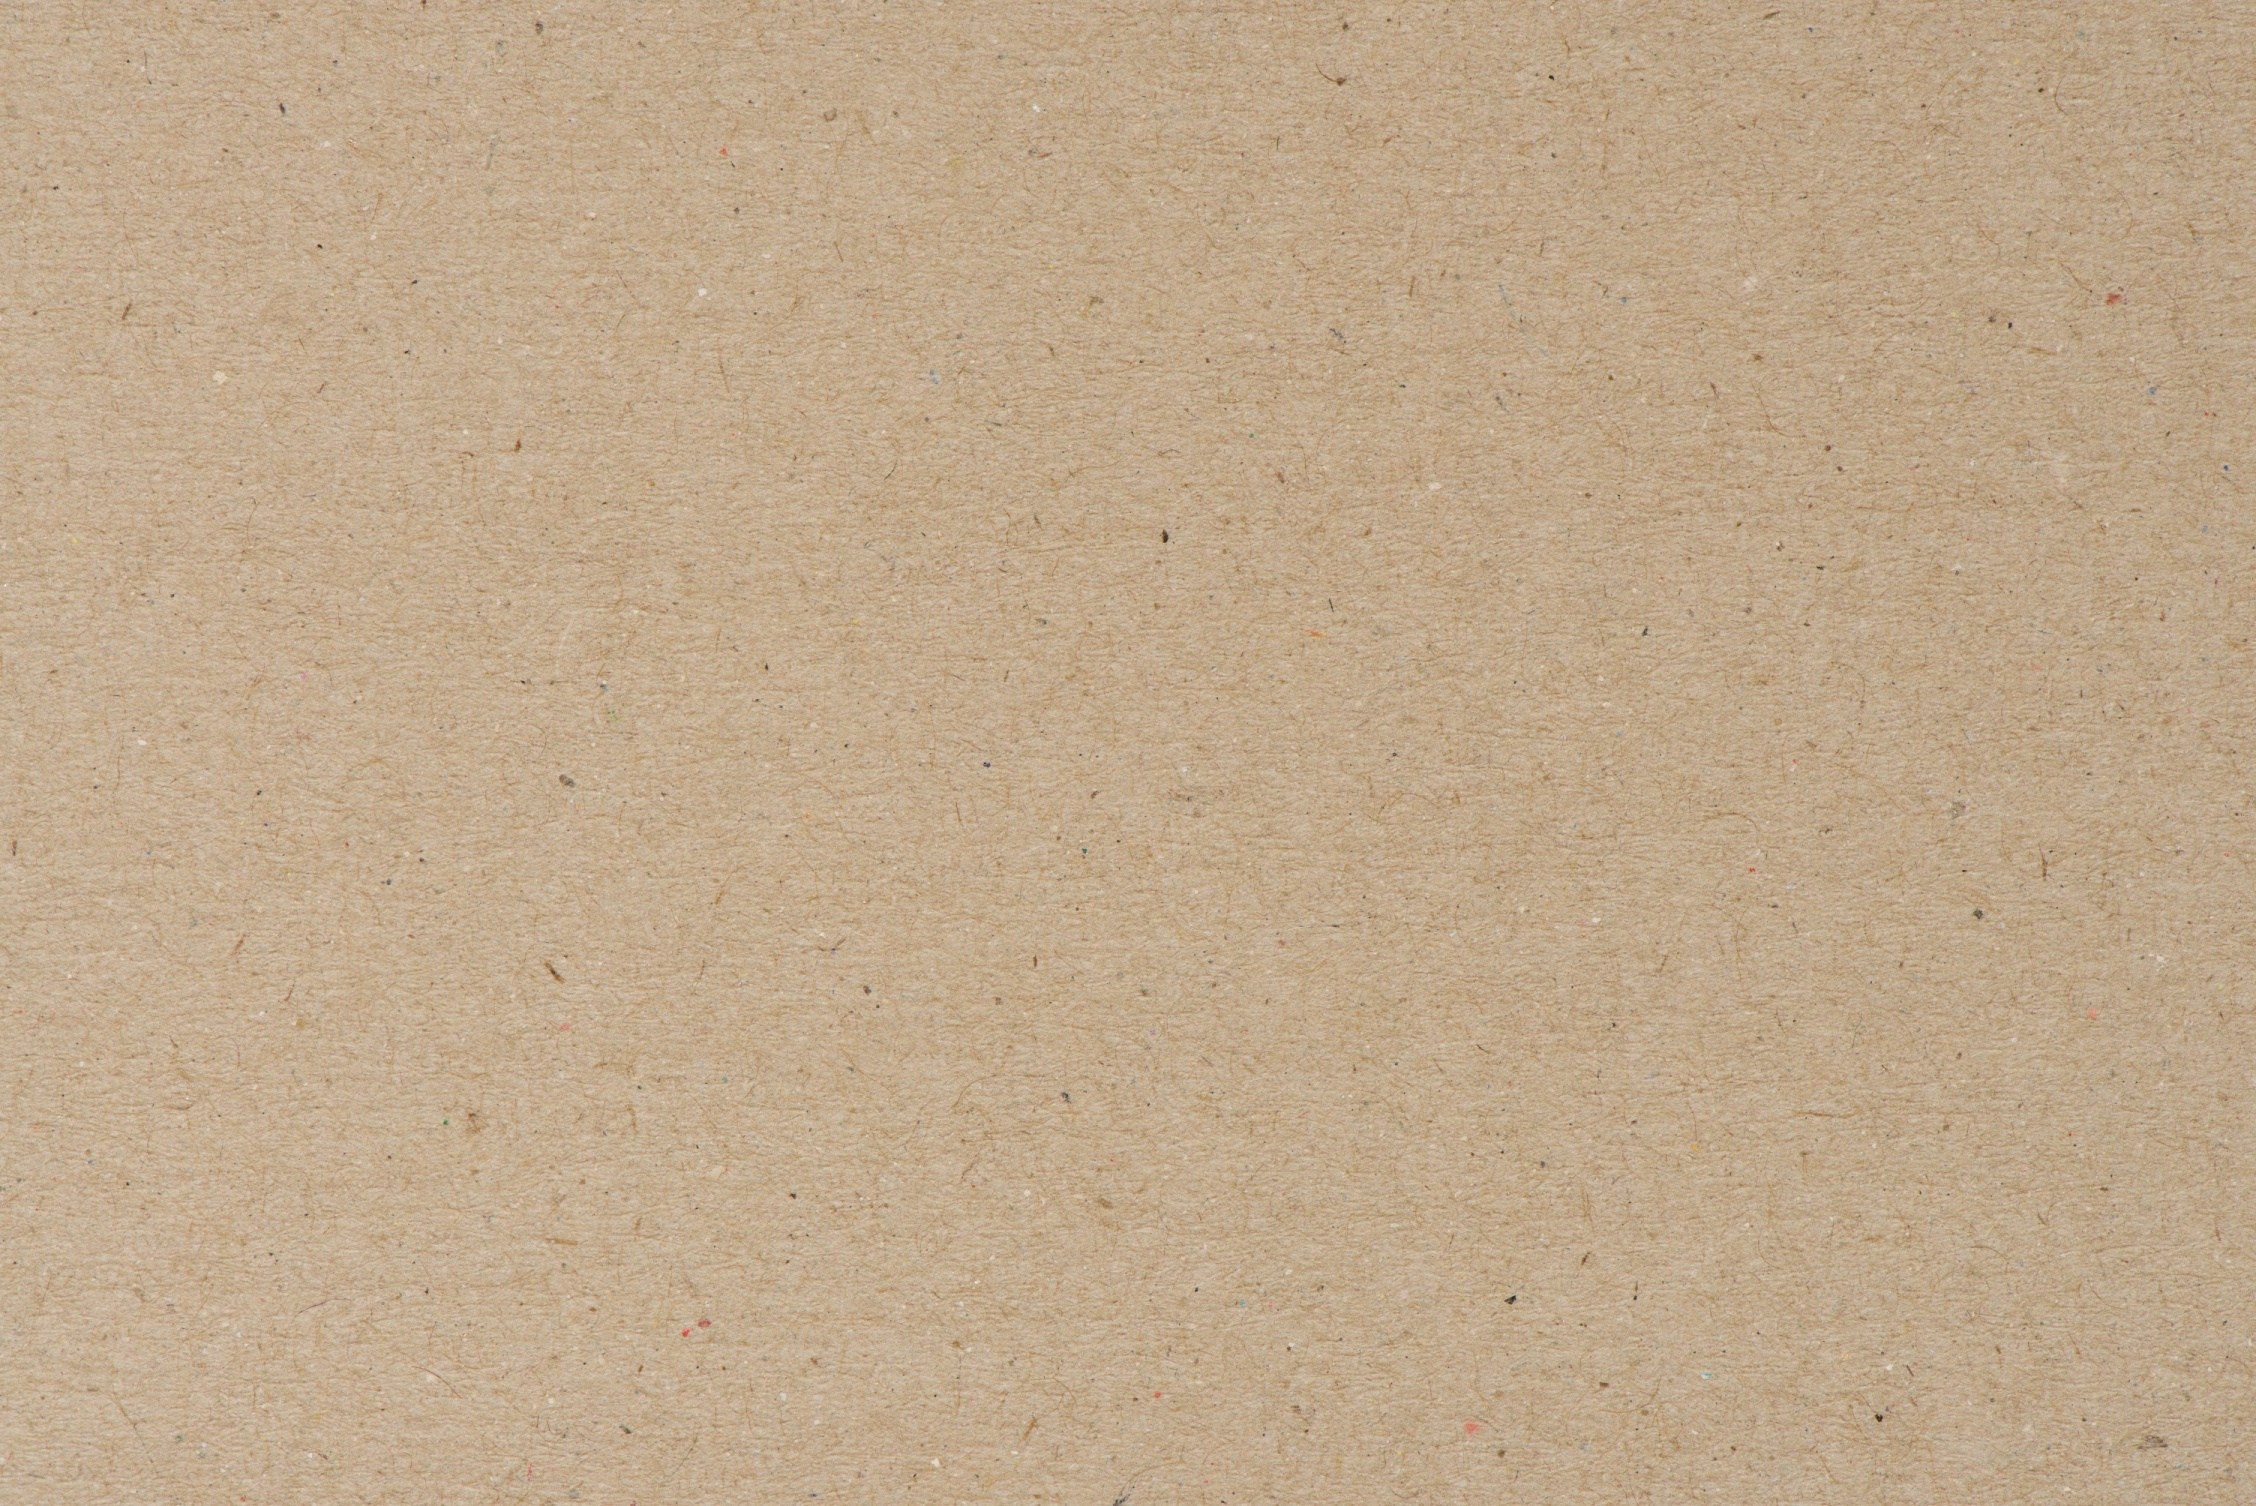 Paper texture - brown kraft sheet background. - Big Green